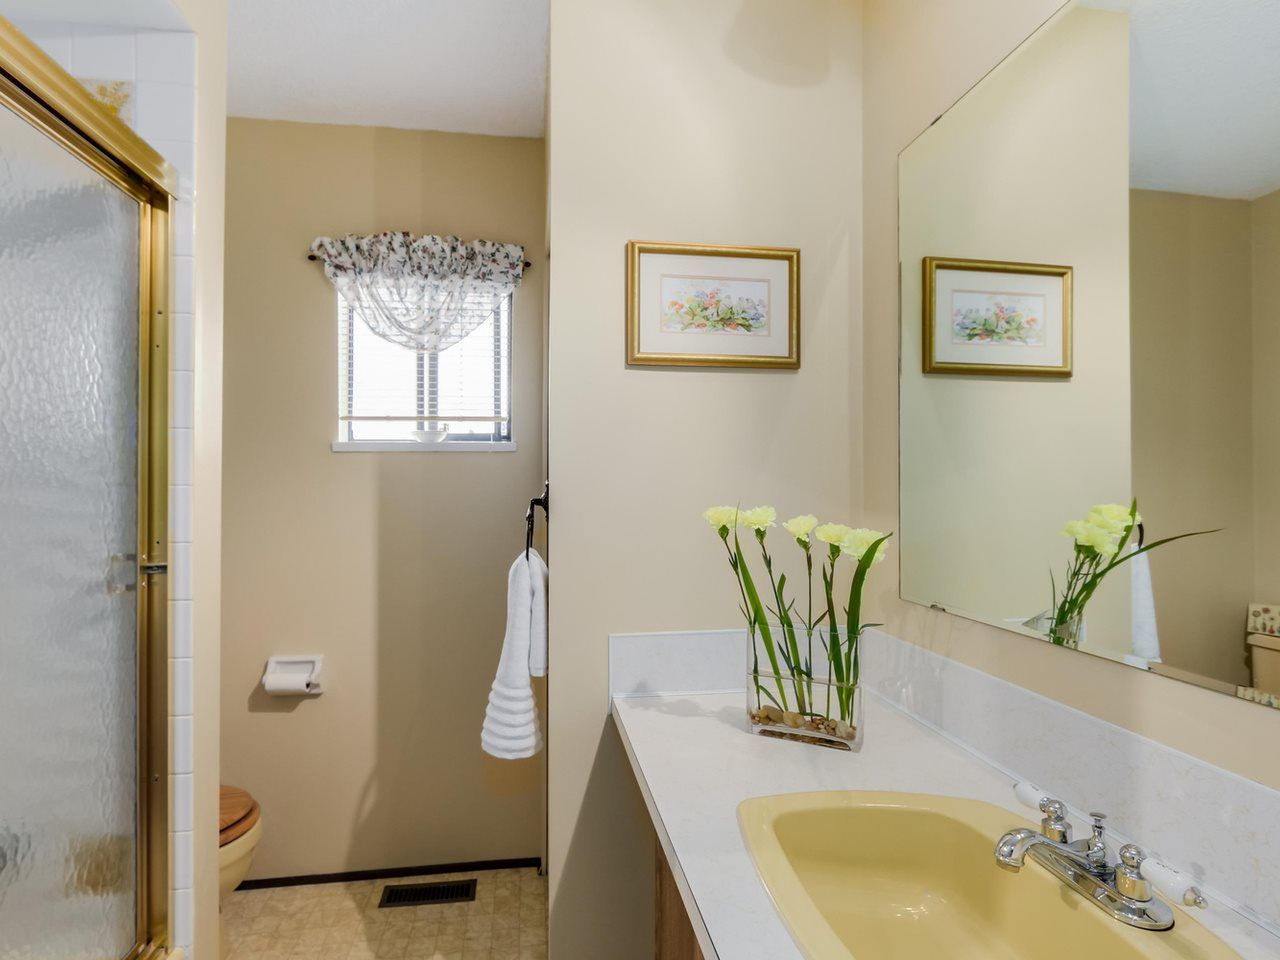 Photo 16: Photos: 4032 AYLING Street in Port Coquitlam: Oxford Heights House for sale : MLS®# R2074528